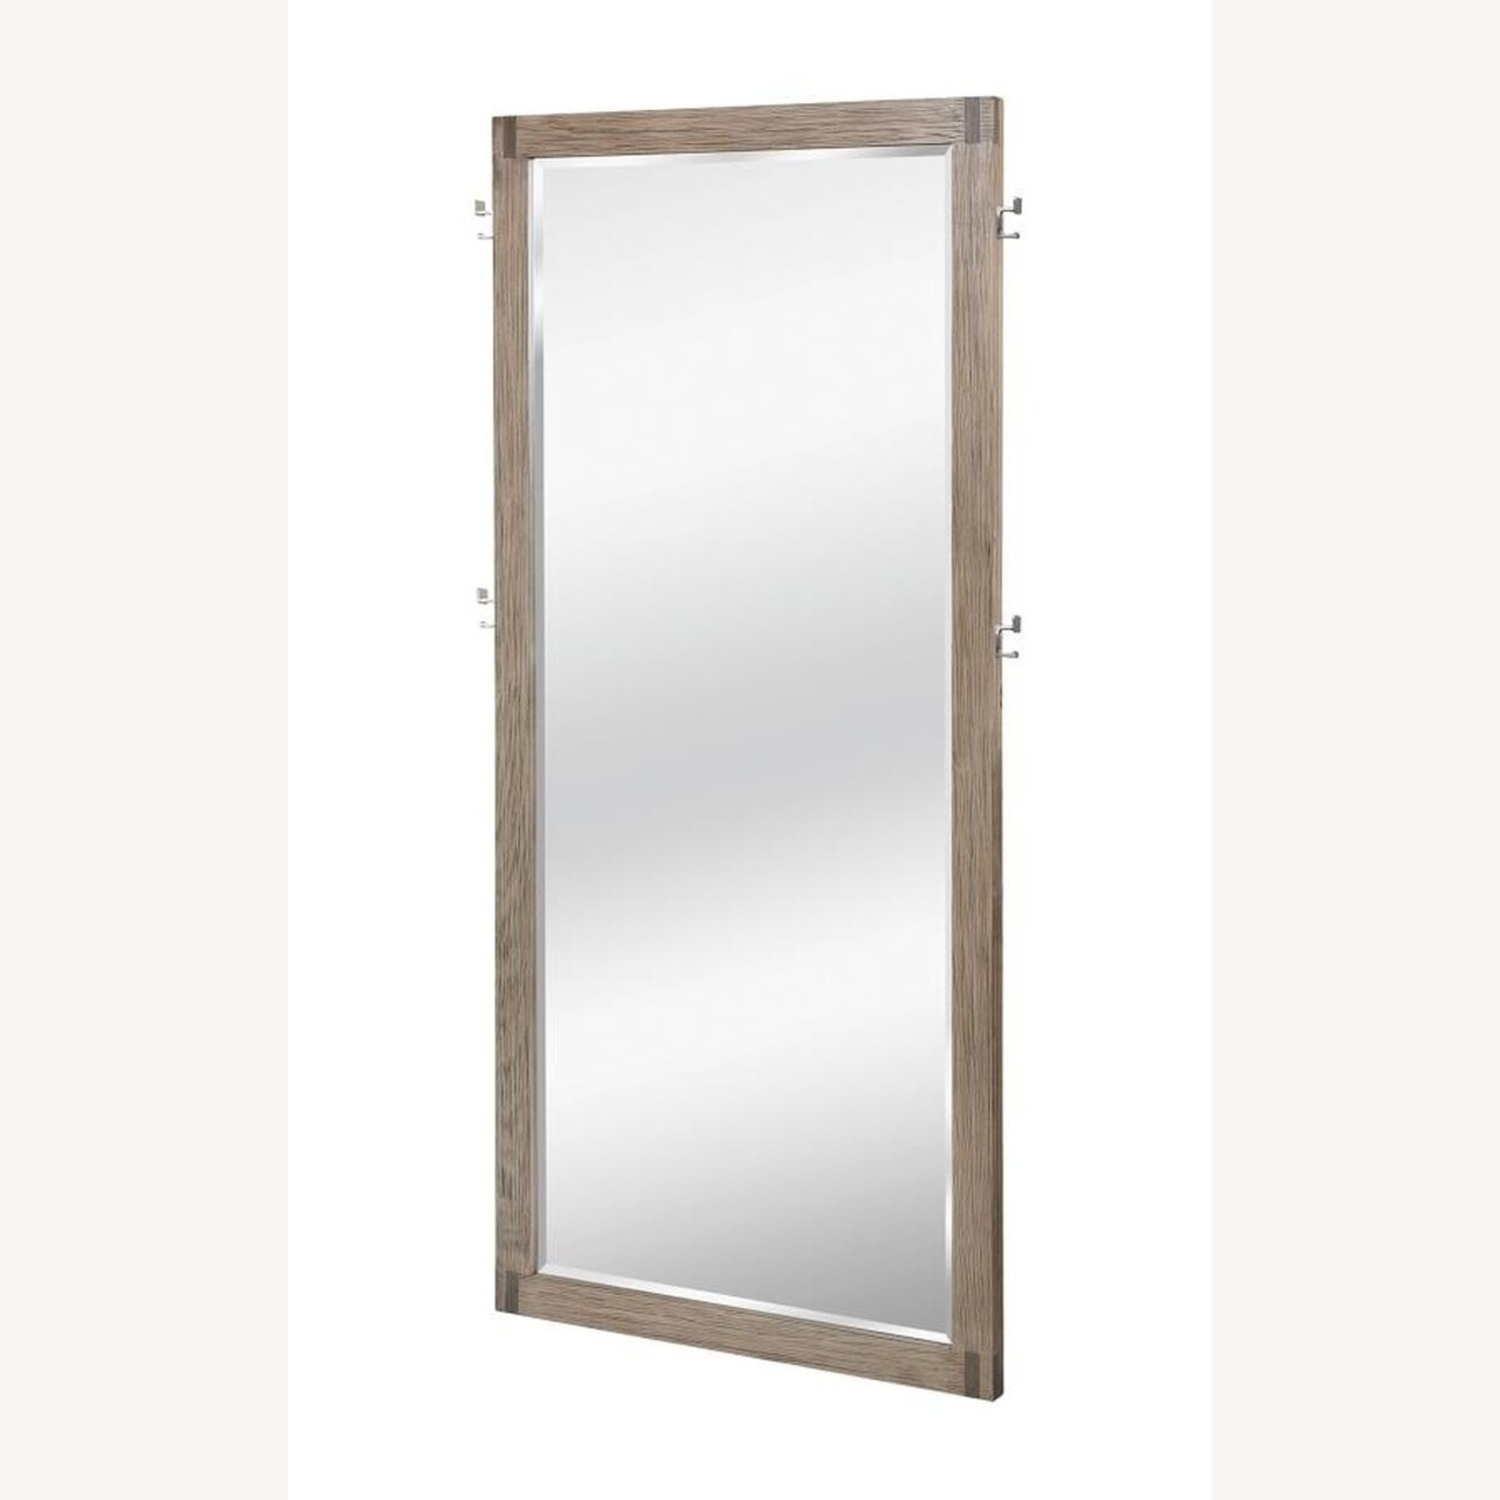 Modern Floor Mirror in Grey Oak Frame W/ Hooks - image-1